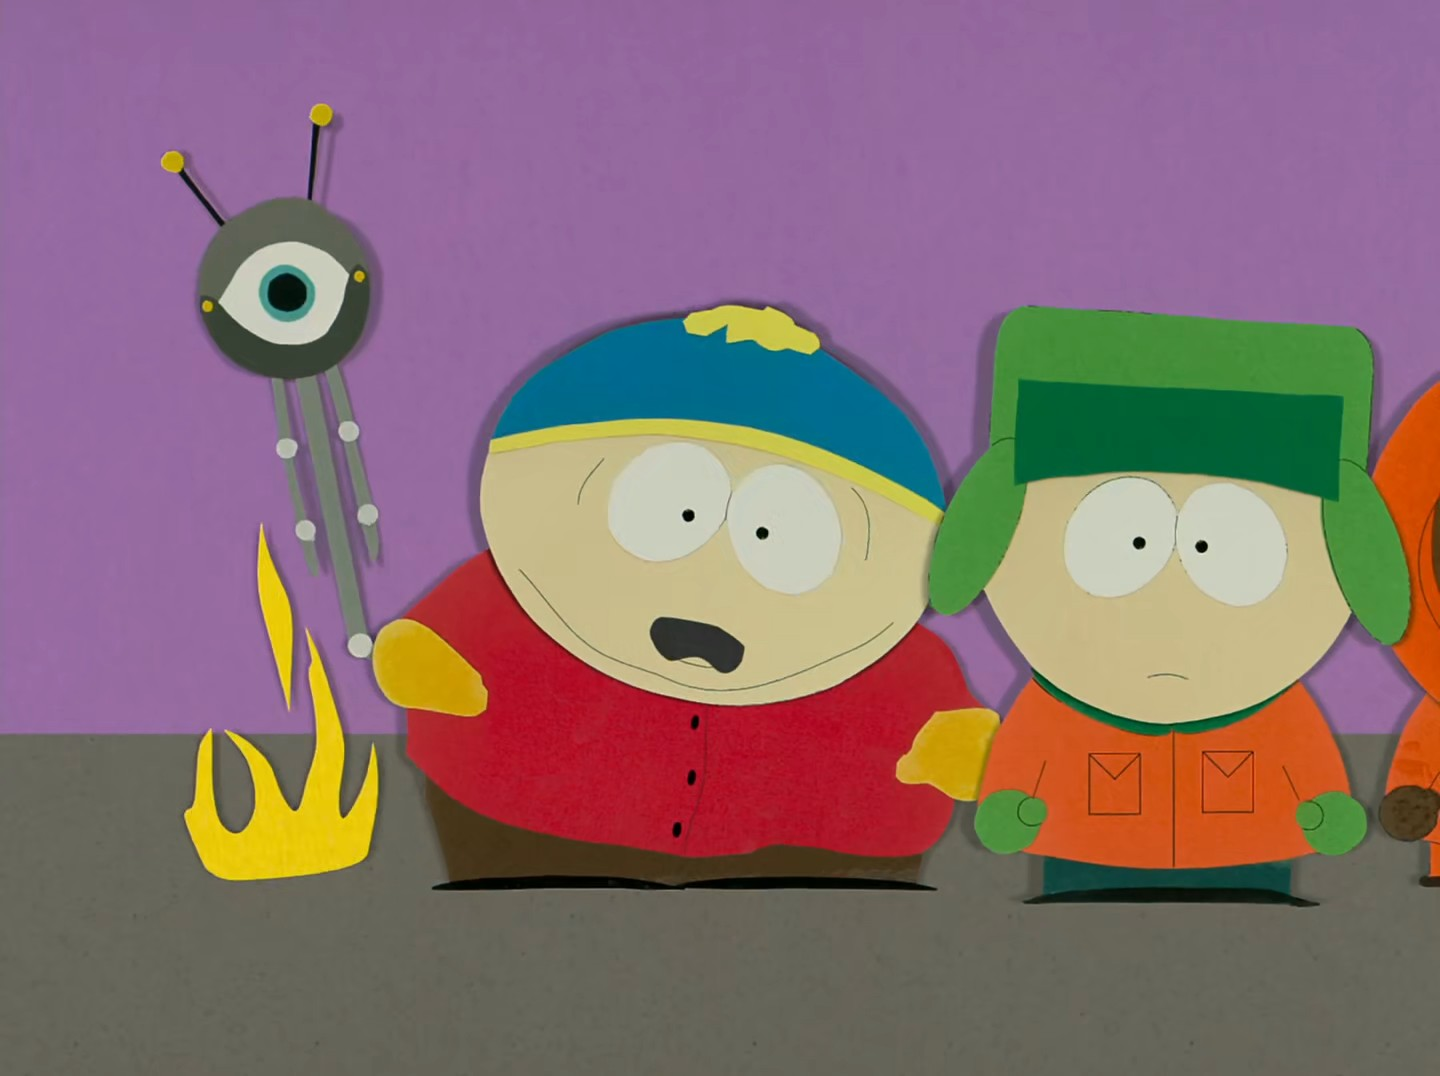 The Most Controversial South Park Episodes, Ranked